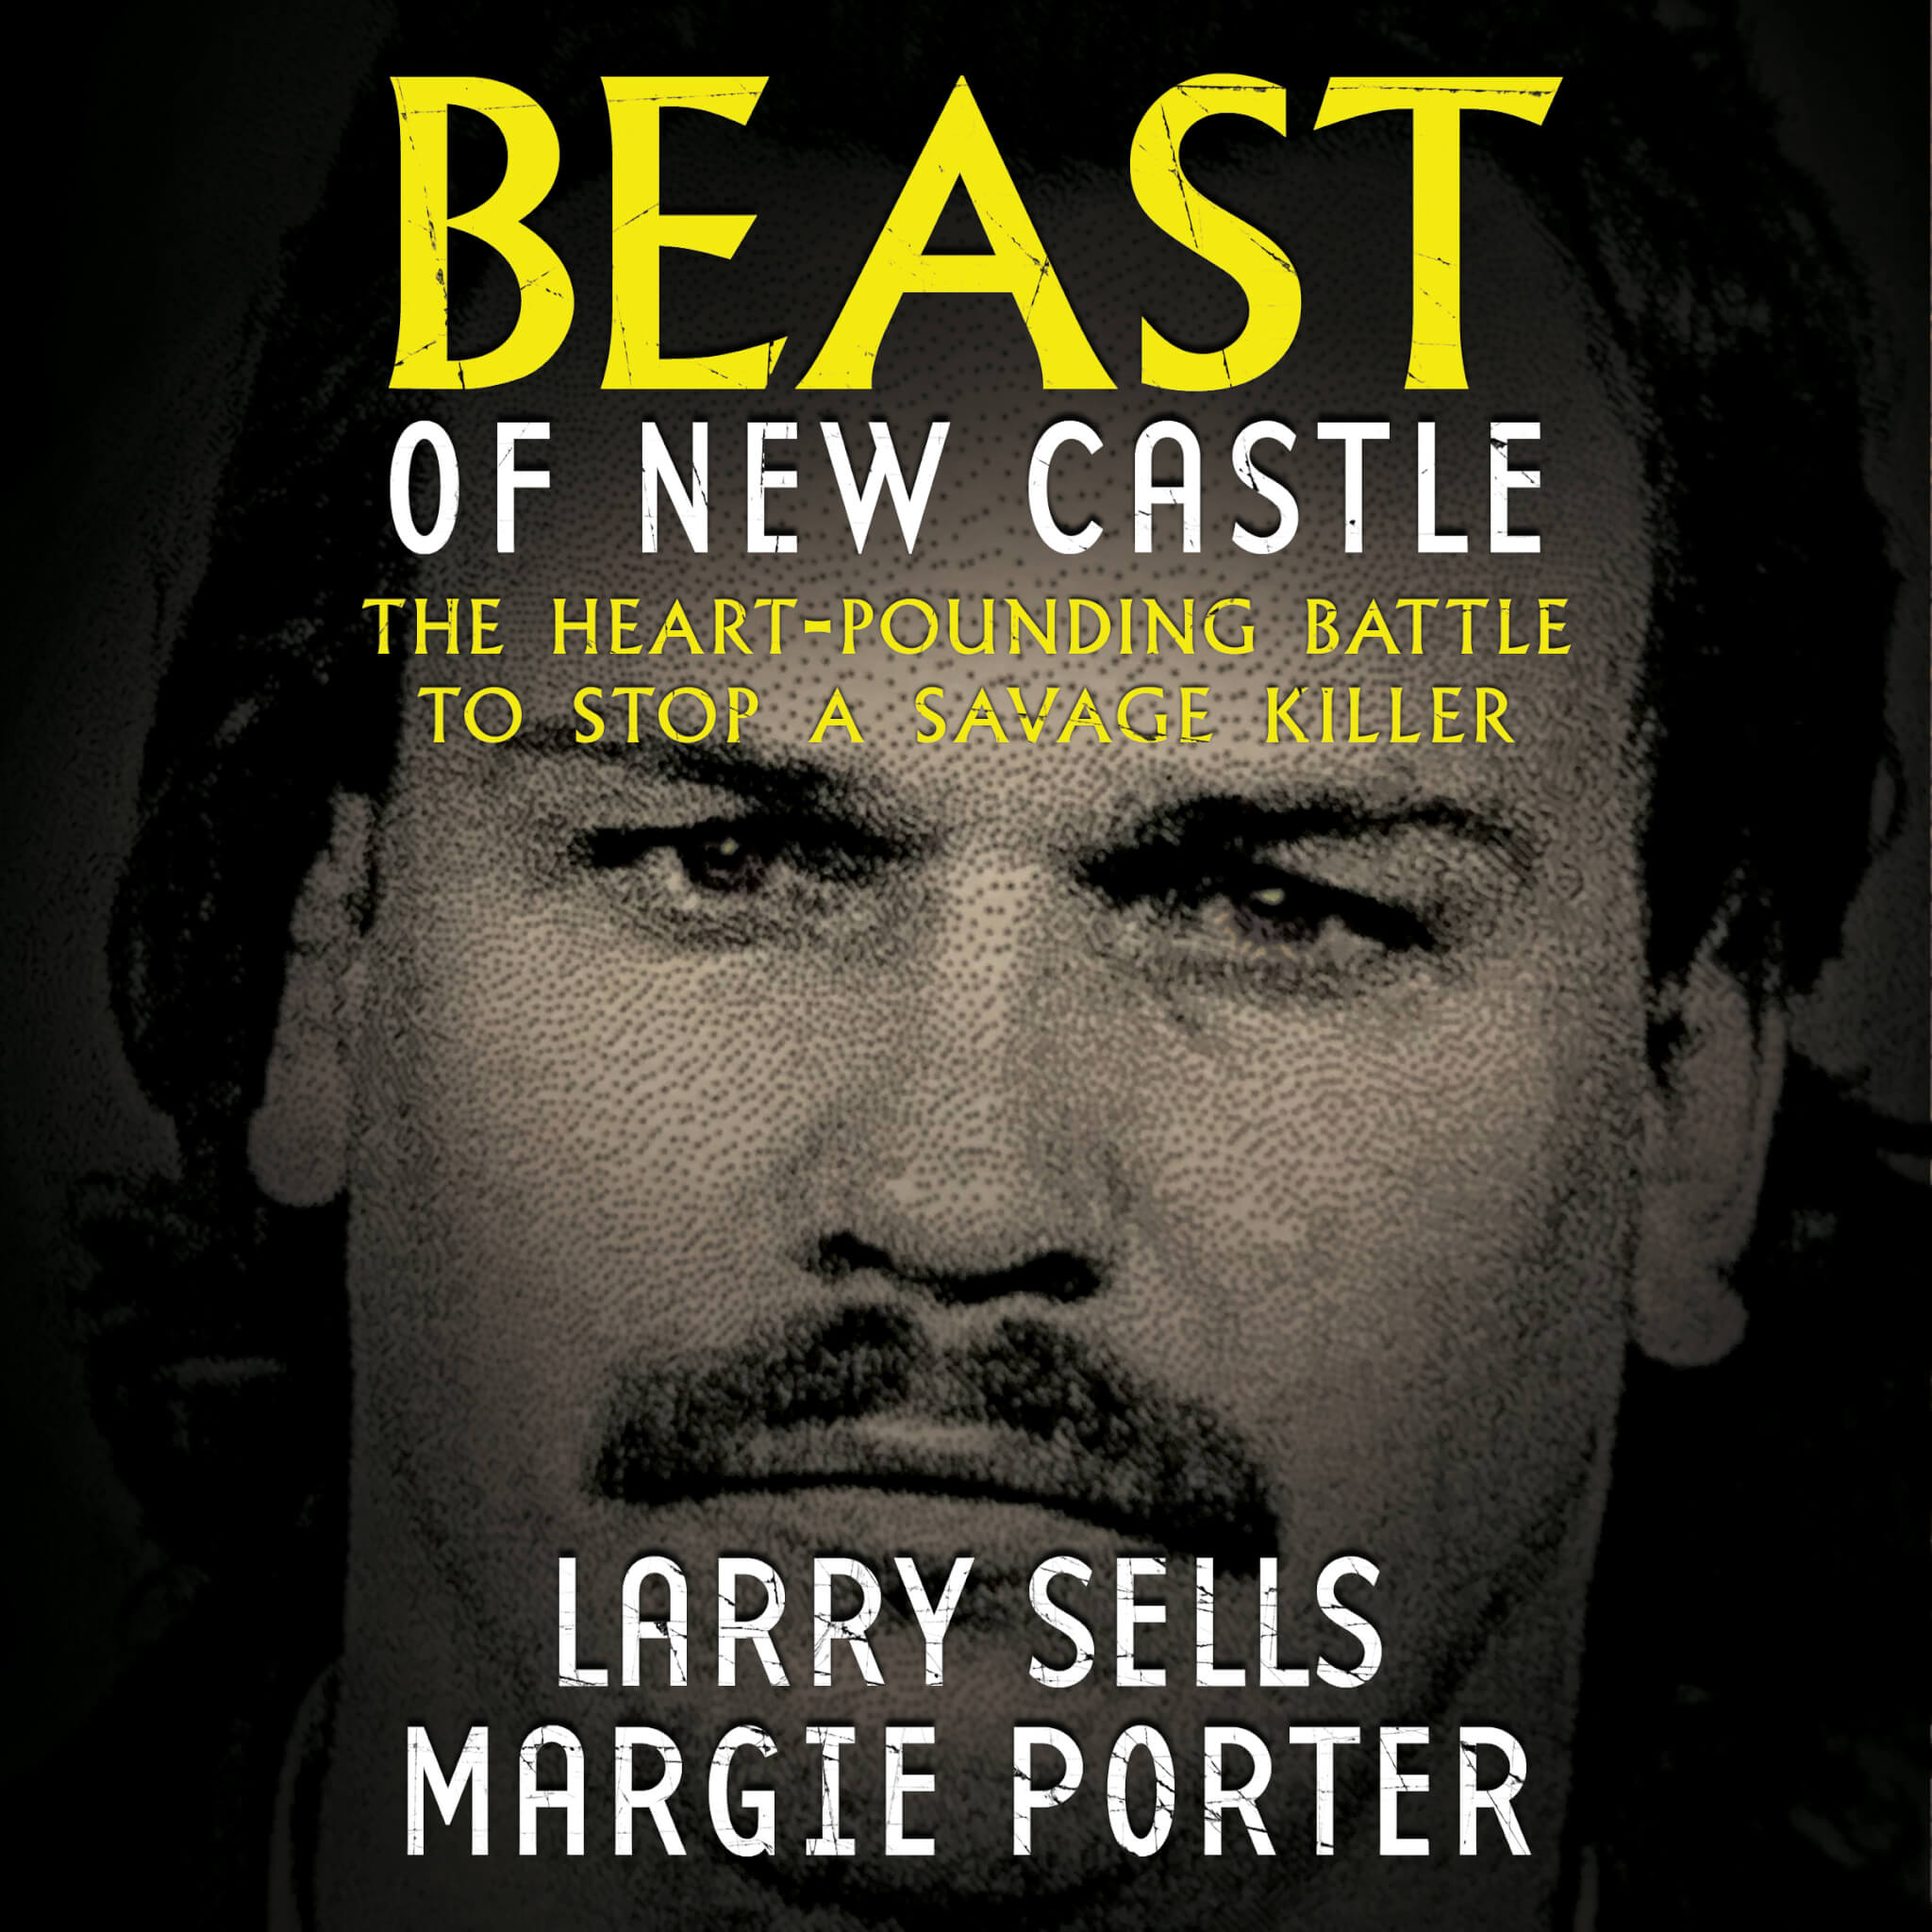 Beast of New Castle: The Heart-Pounding Battle to Stop a Serial Killer by Larry Sells and Margie Porter